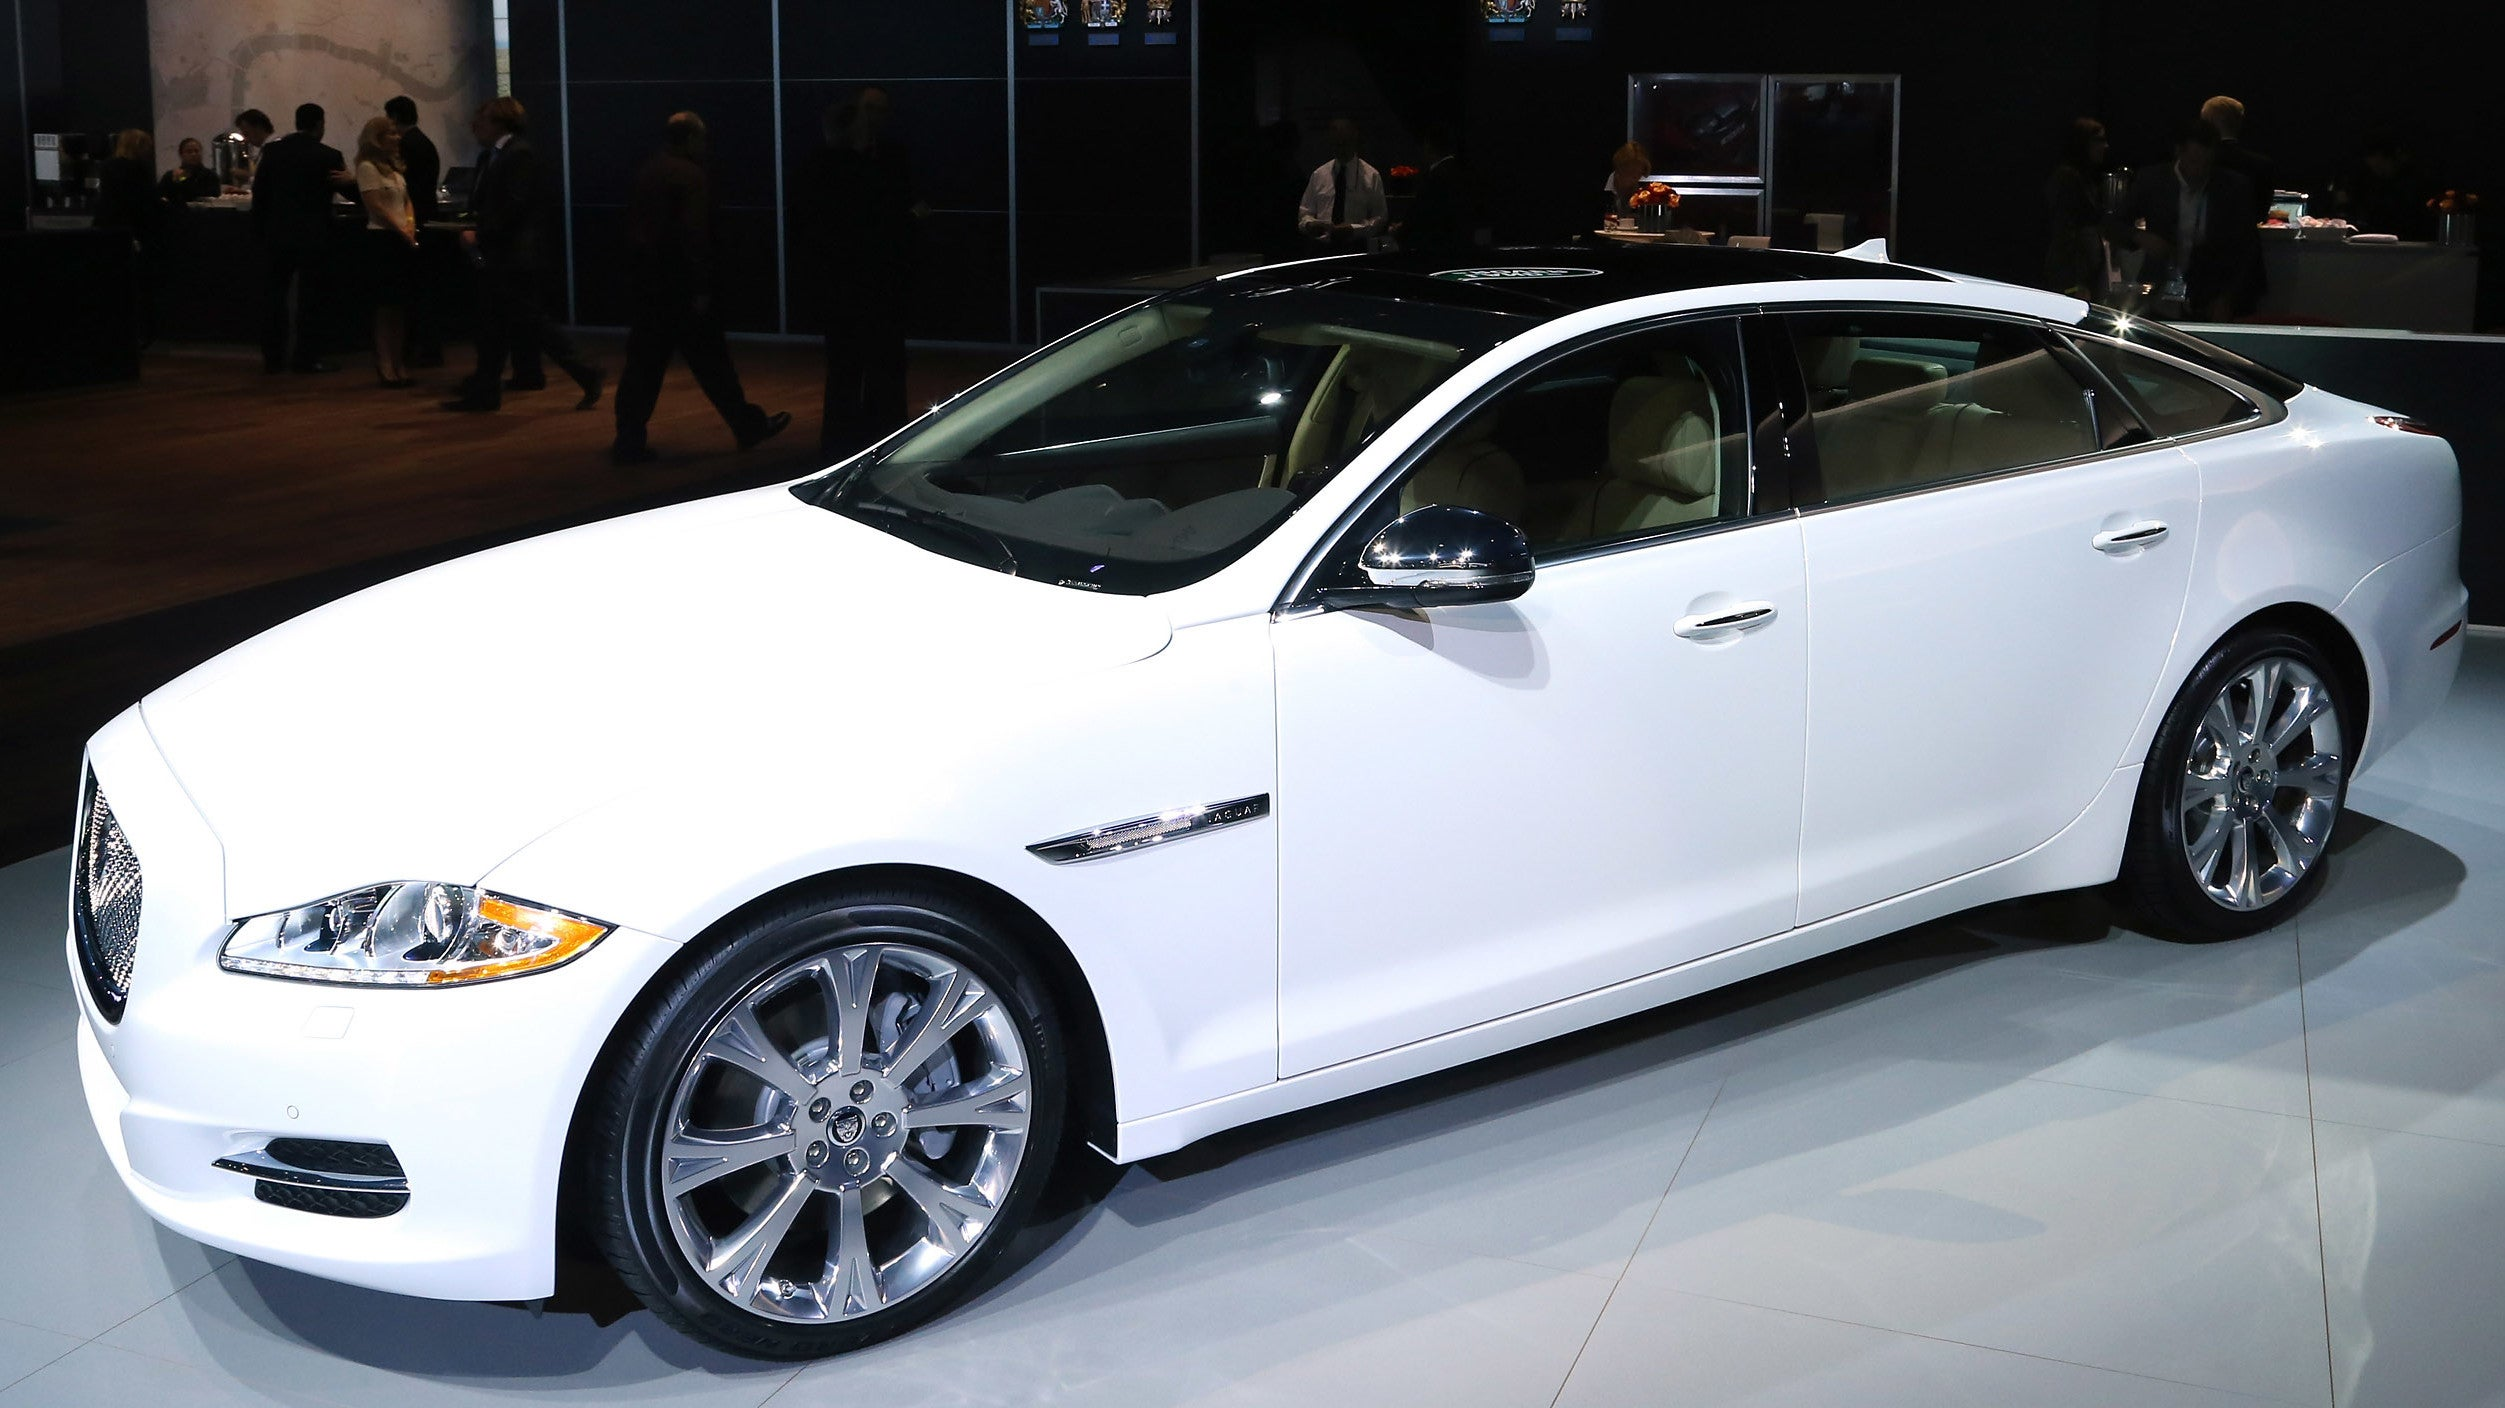 Man Sues Jaguar Claiming Automatic Door On $96,000 Car Severed His Thumb